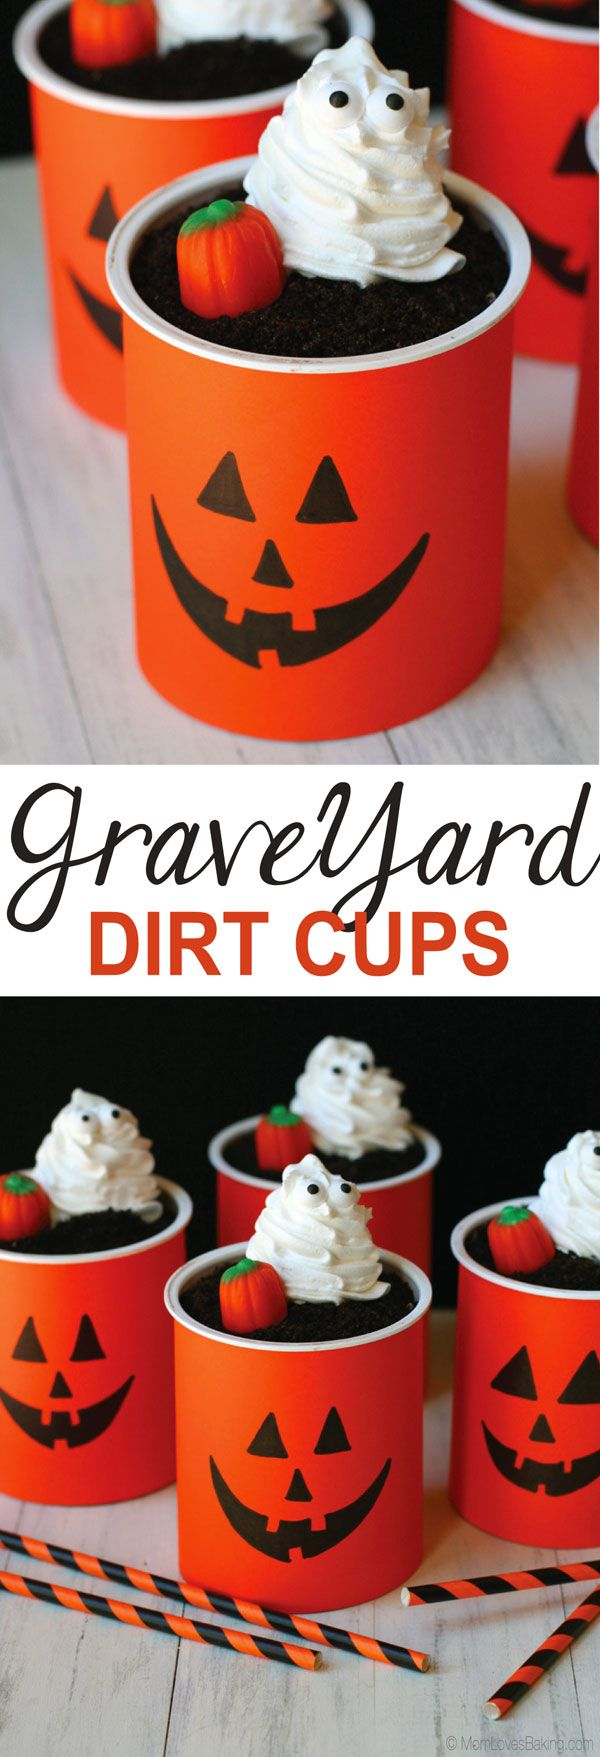 Graveyard Dirt Cups are a fun Halloween treat the kids can make. Get the tutorial on MomLovesBaking.com